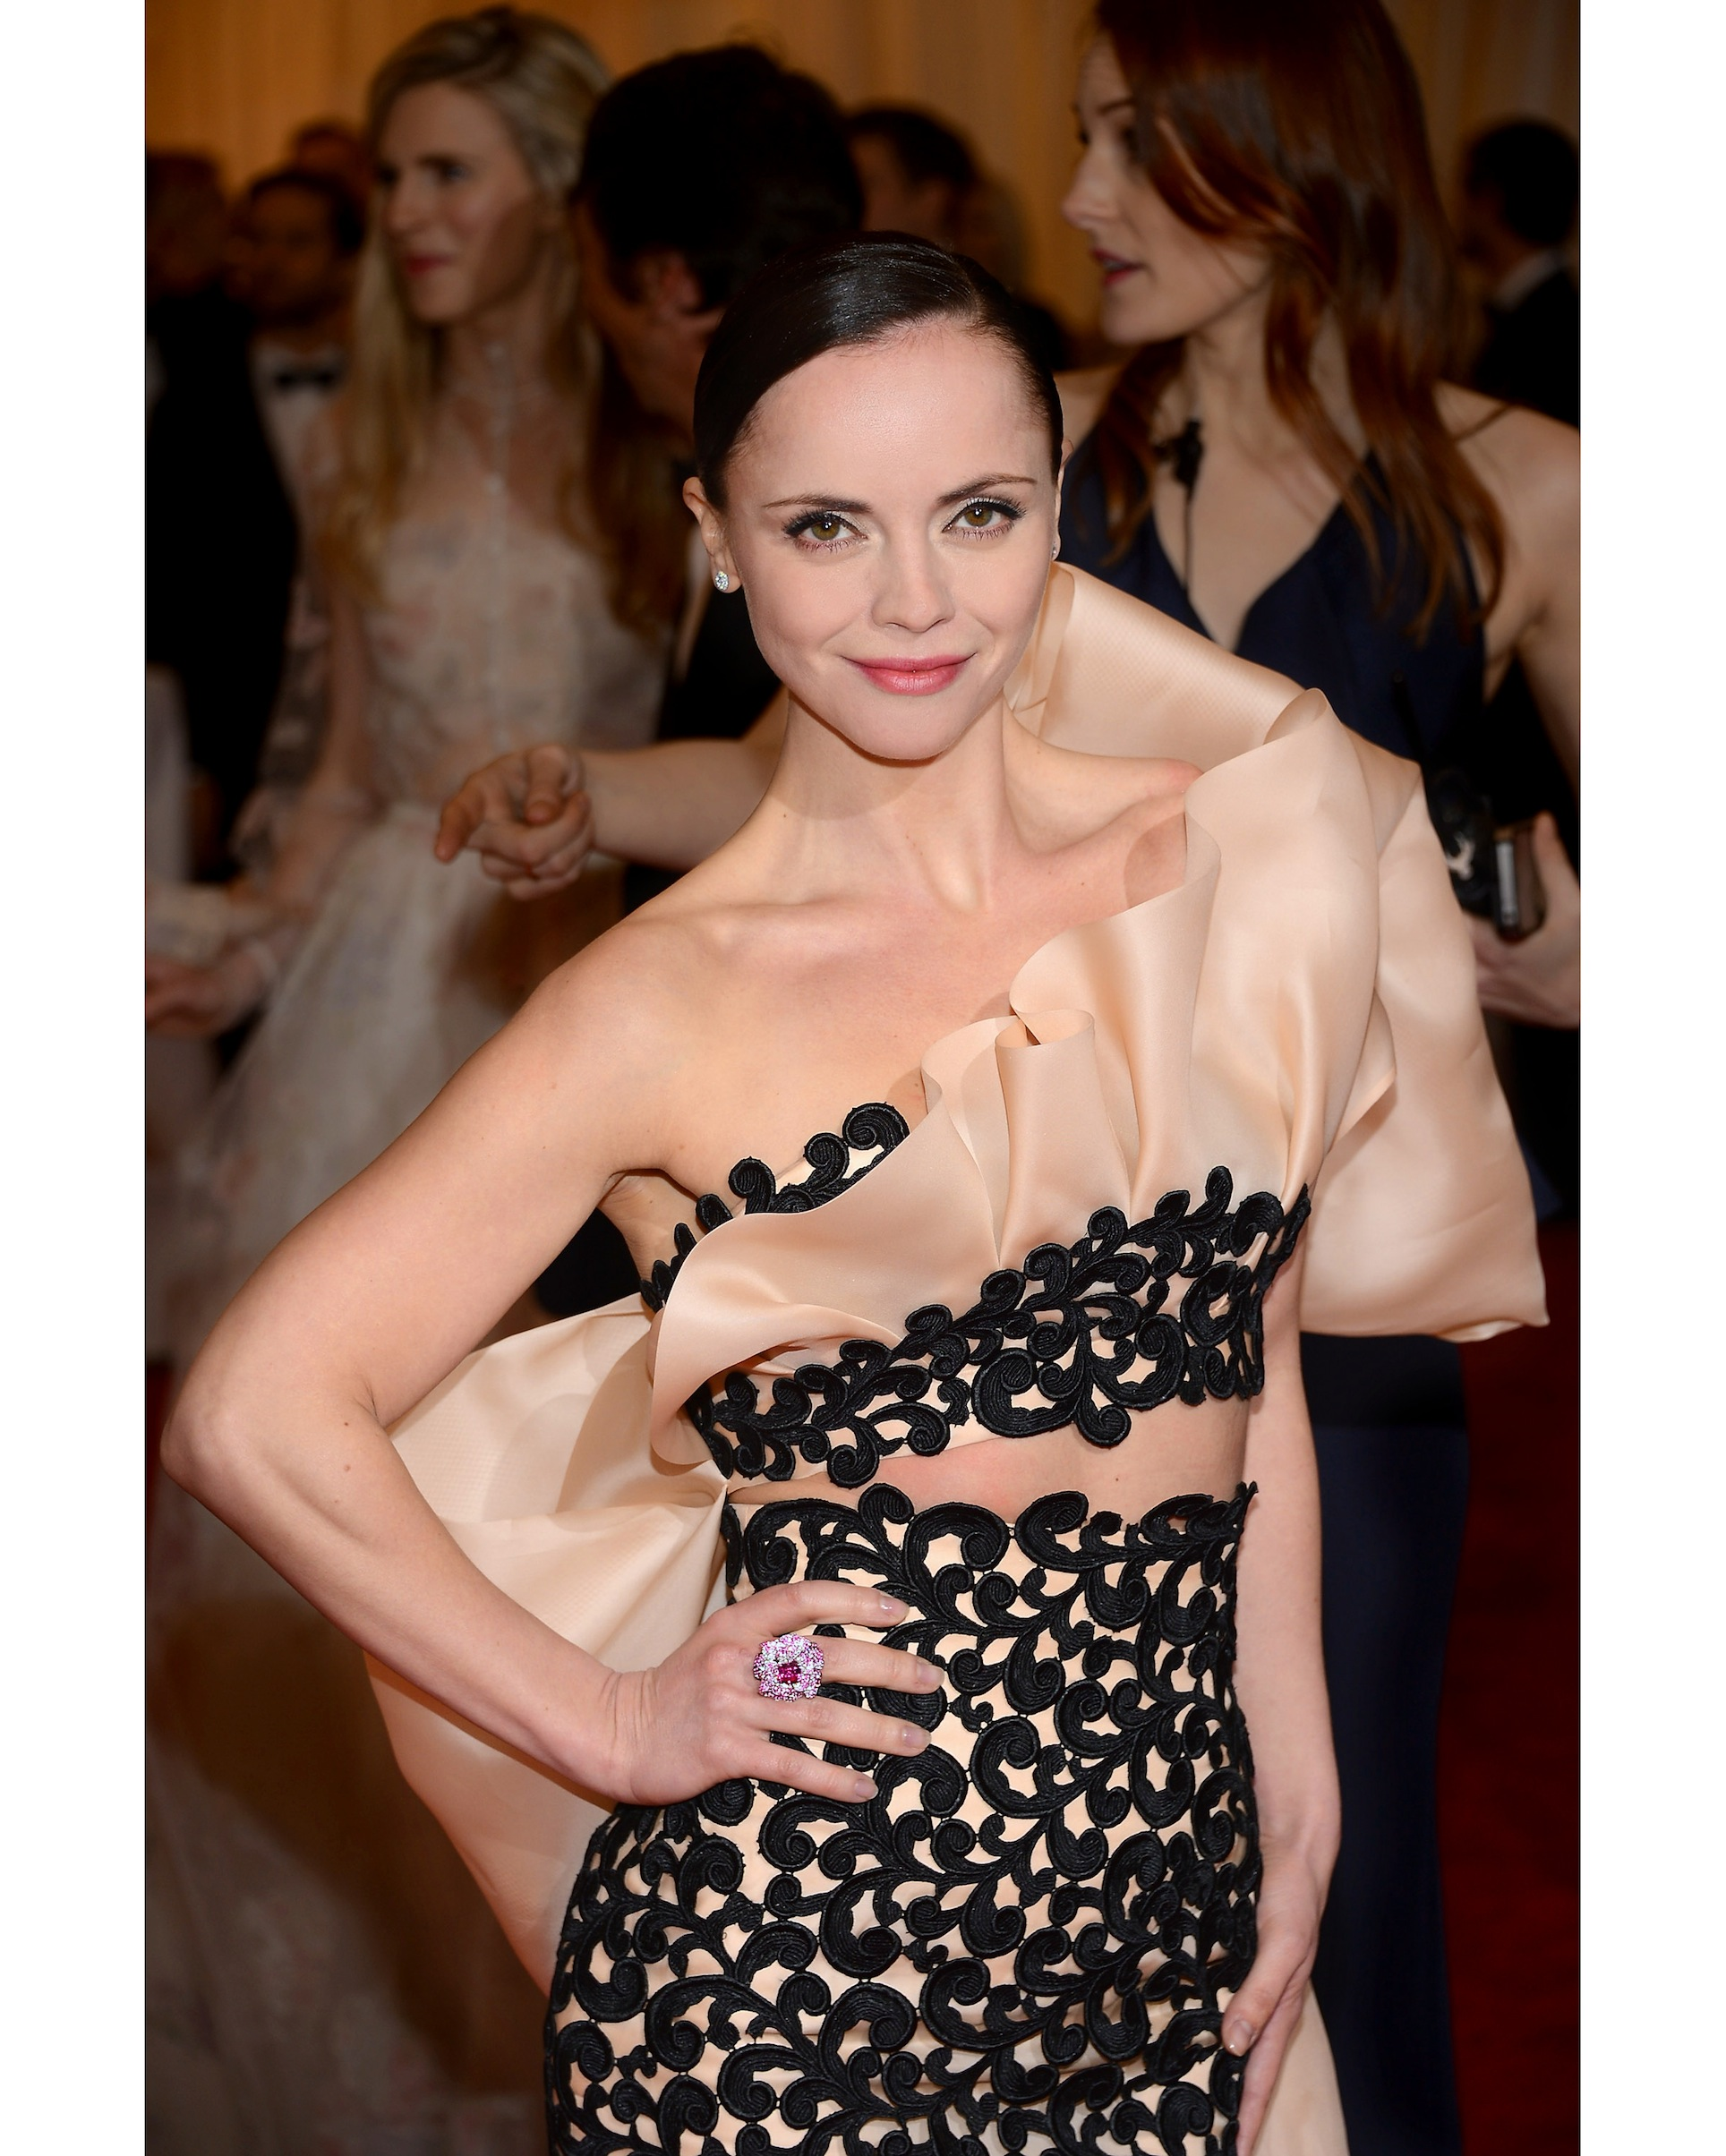 TIFFANY & CO. CHRISTINA RICCI AT THE METROPOLITAN MUSEUM OF ART¹S 2012 COSTUME INSTITUTE GALA